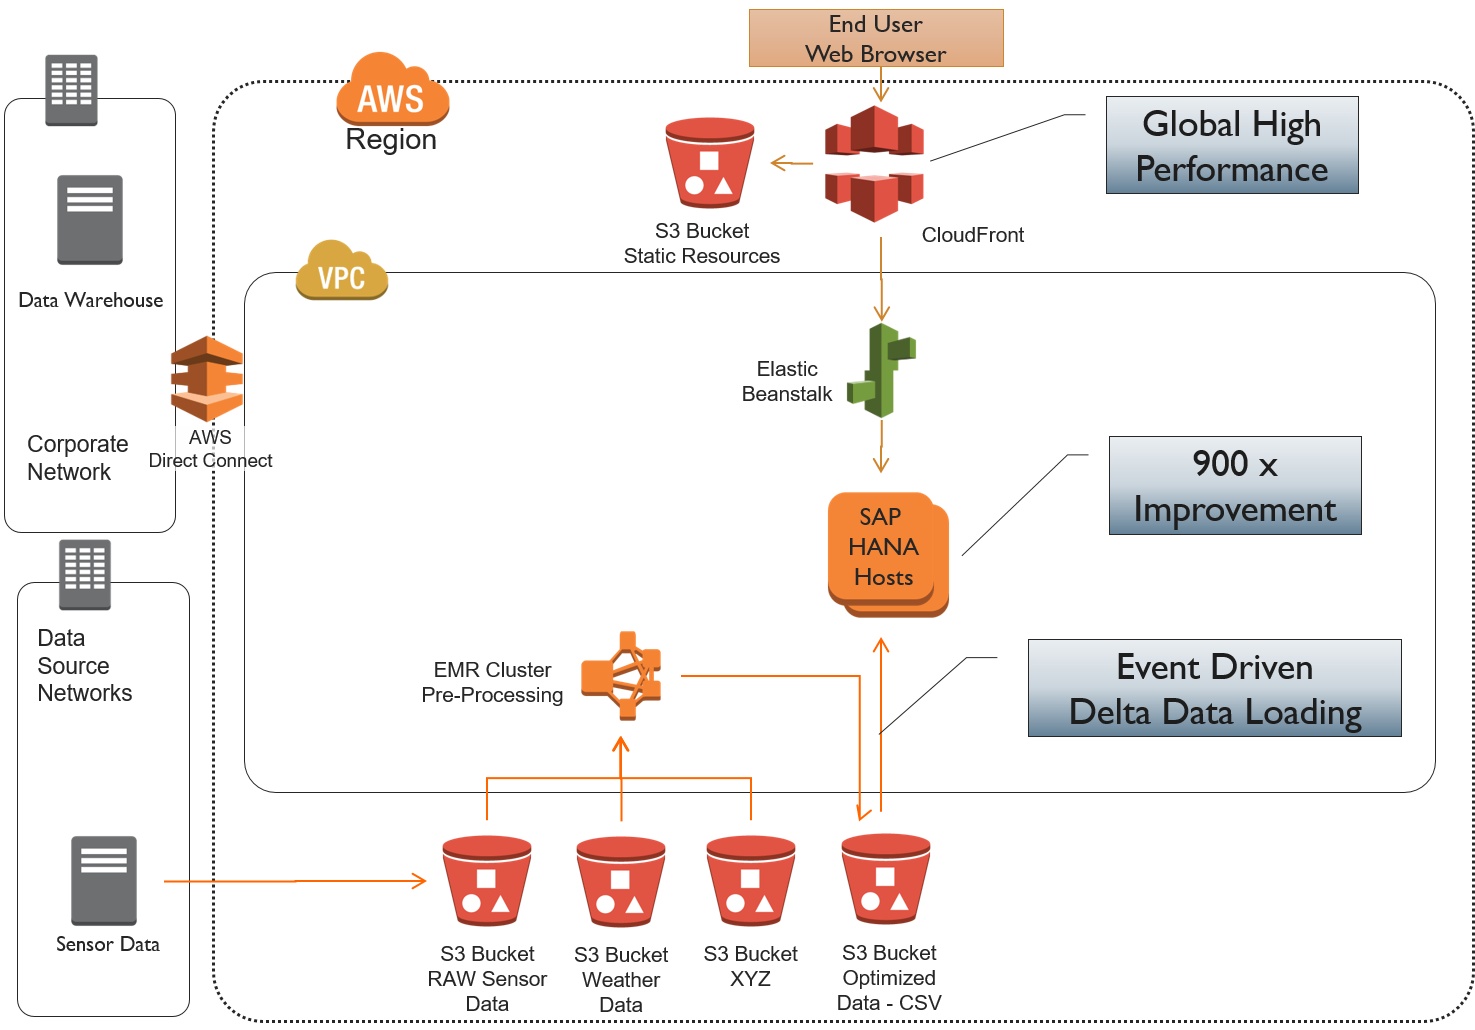 AWS S3, CloudFront, Direct Connect, EMR Cluster, Sensor Data, VPC